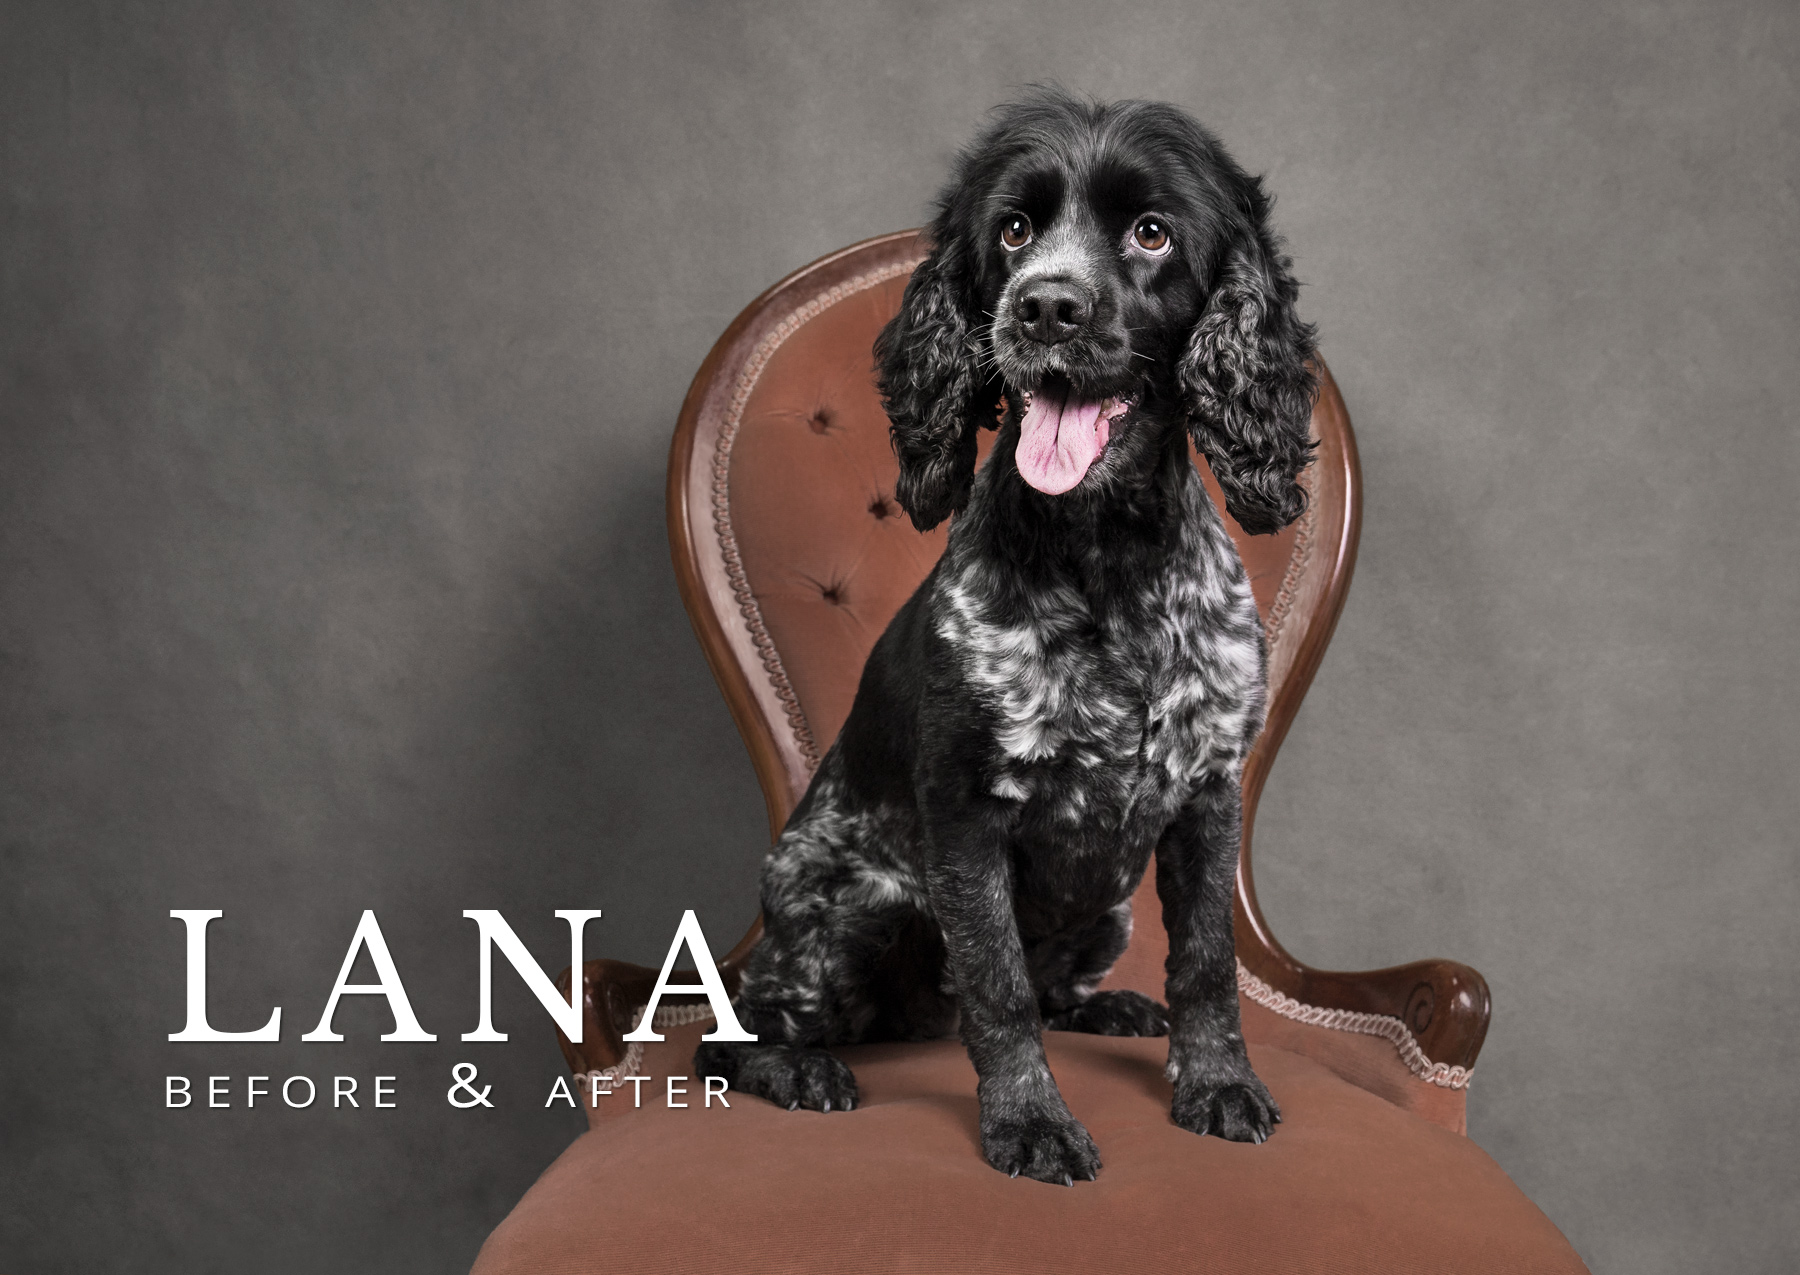 lana spaniel before and after